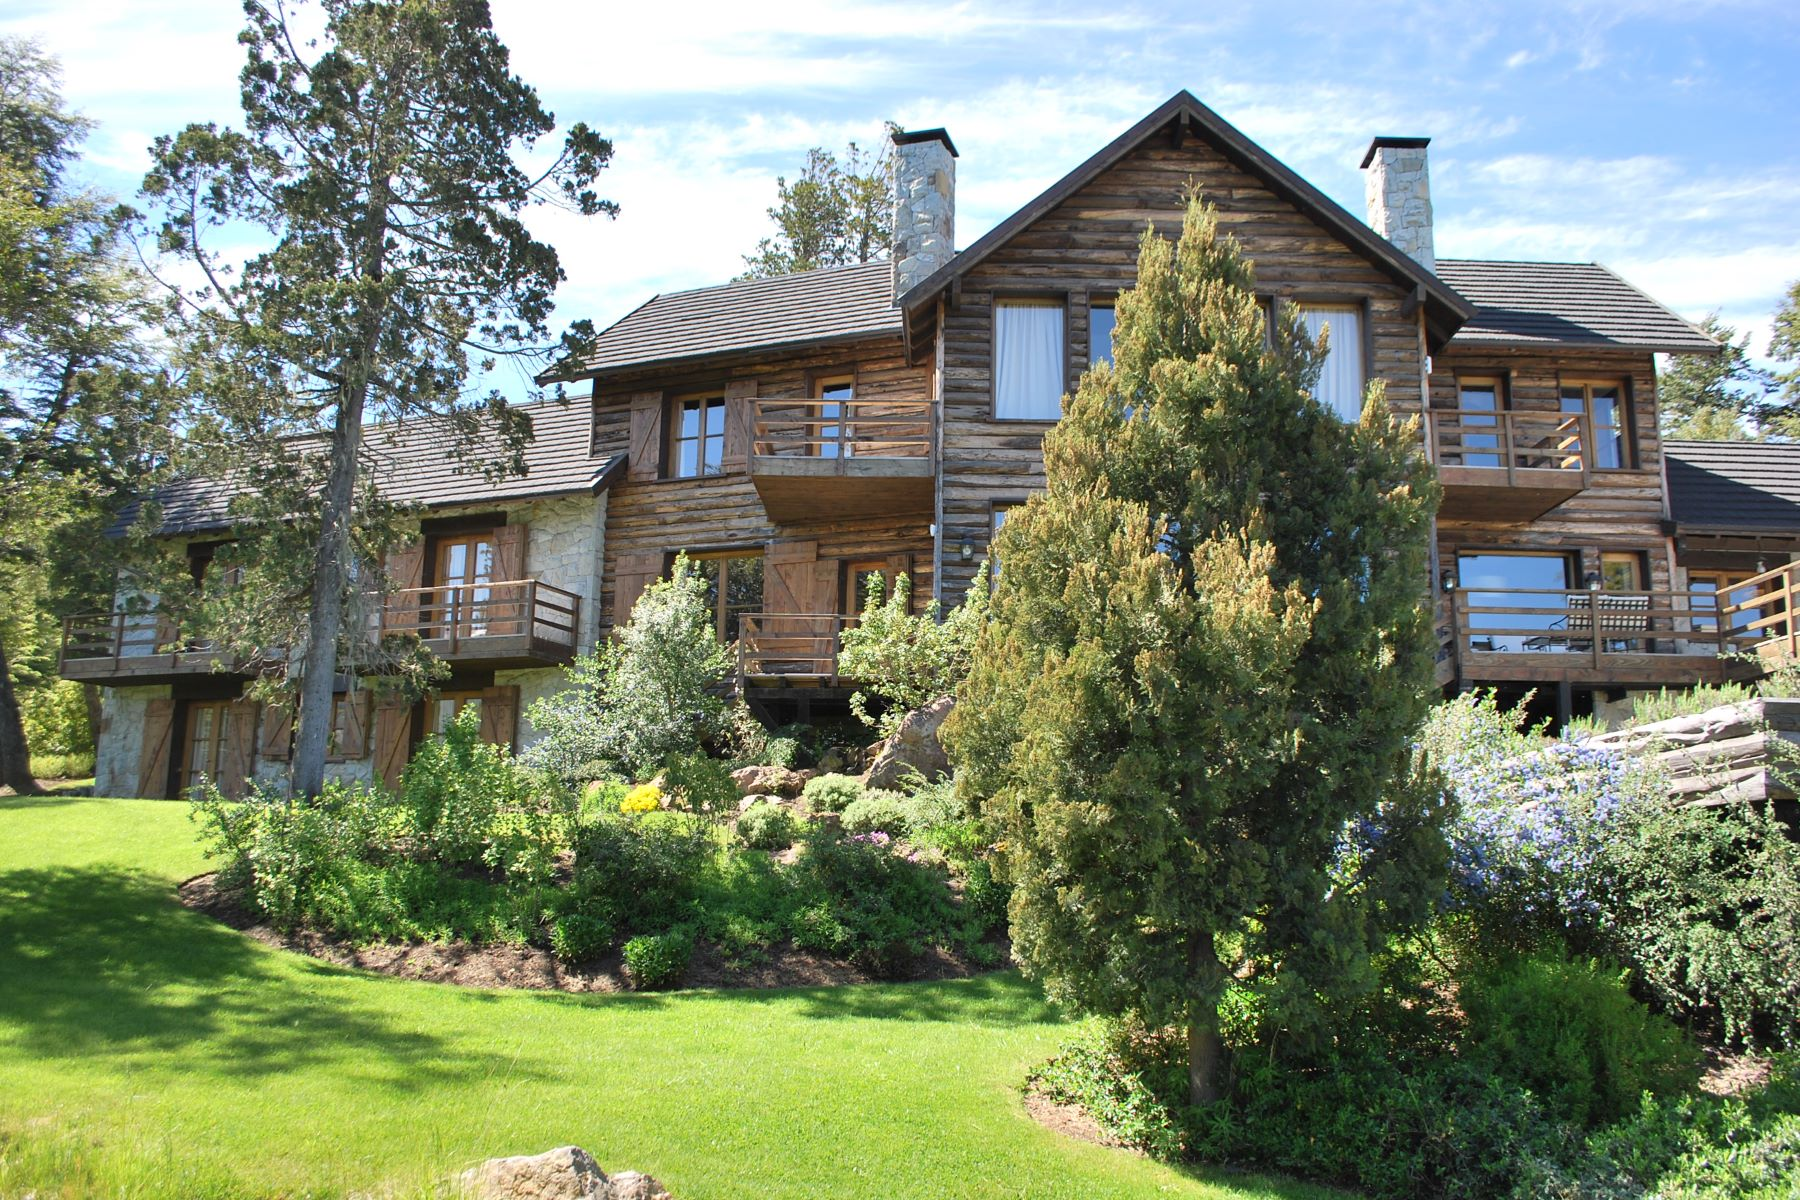 Single Family Home for Sale at Incomparable Mounting Retreat with Lake View Bariloche, Rio Negro Argentina